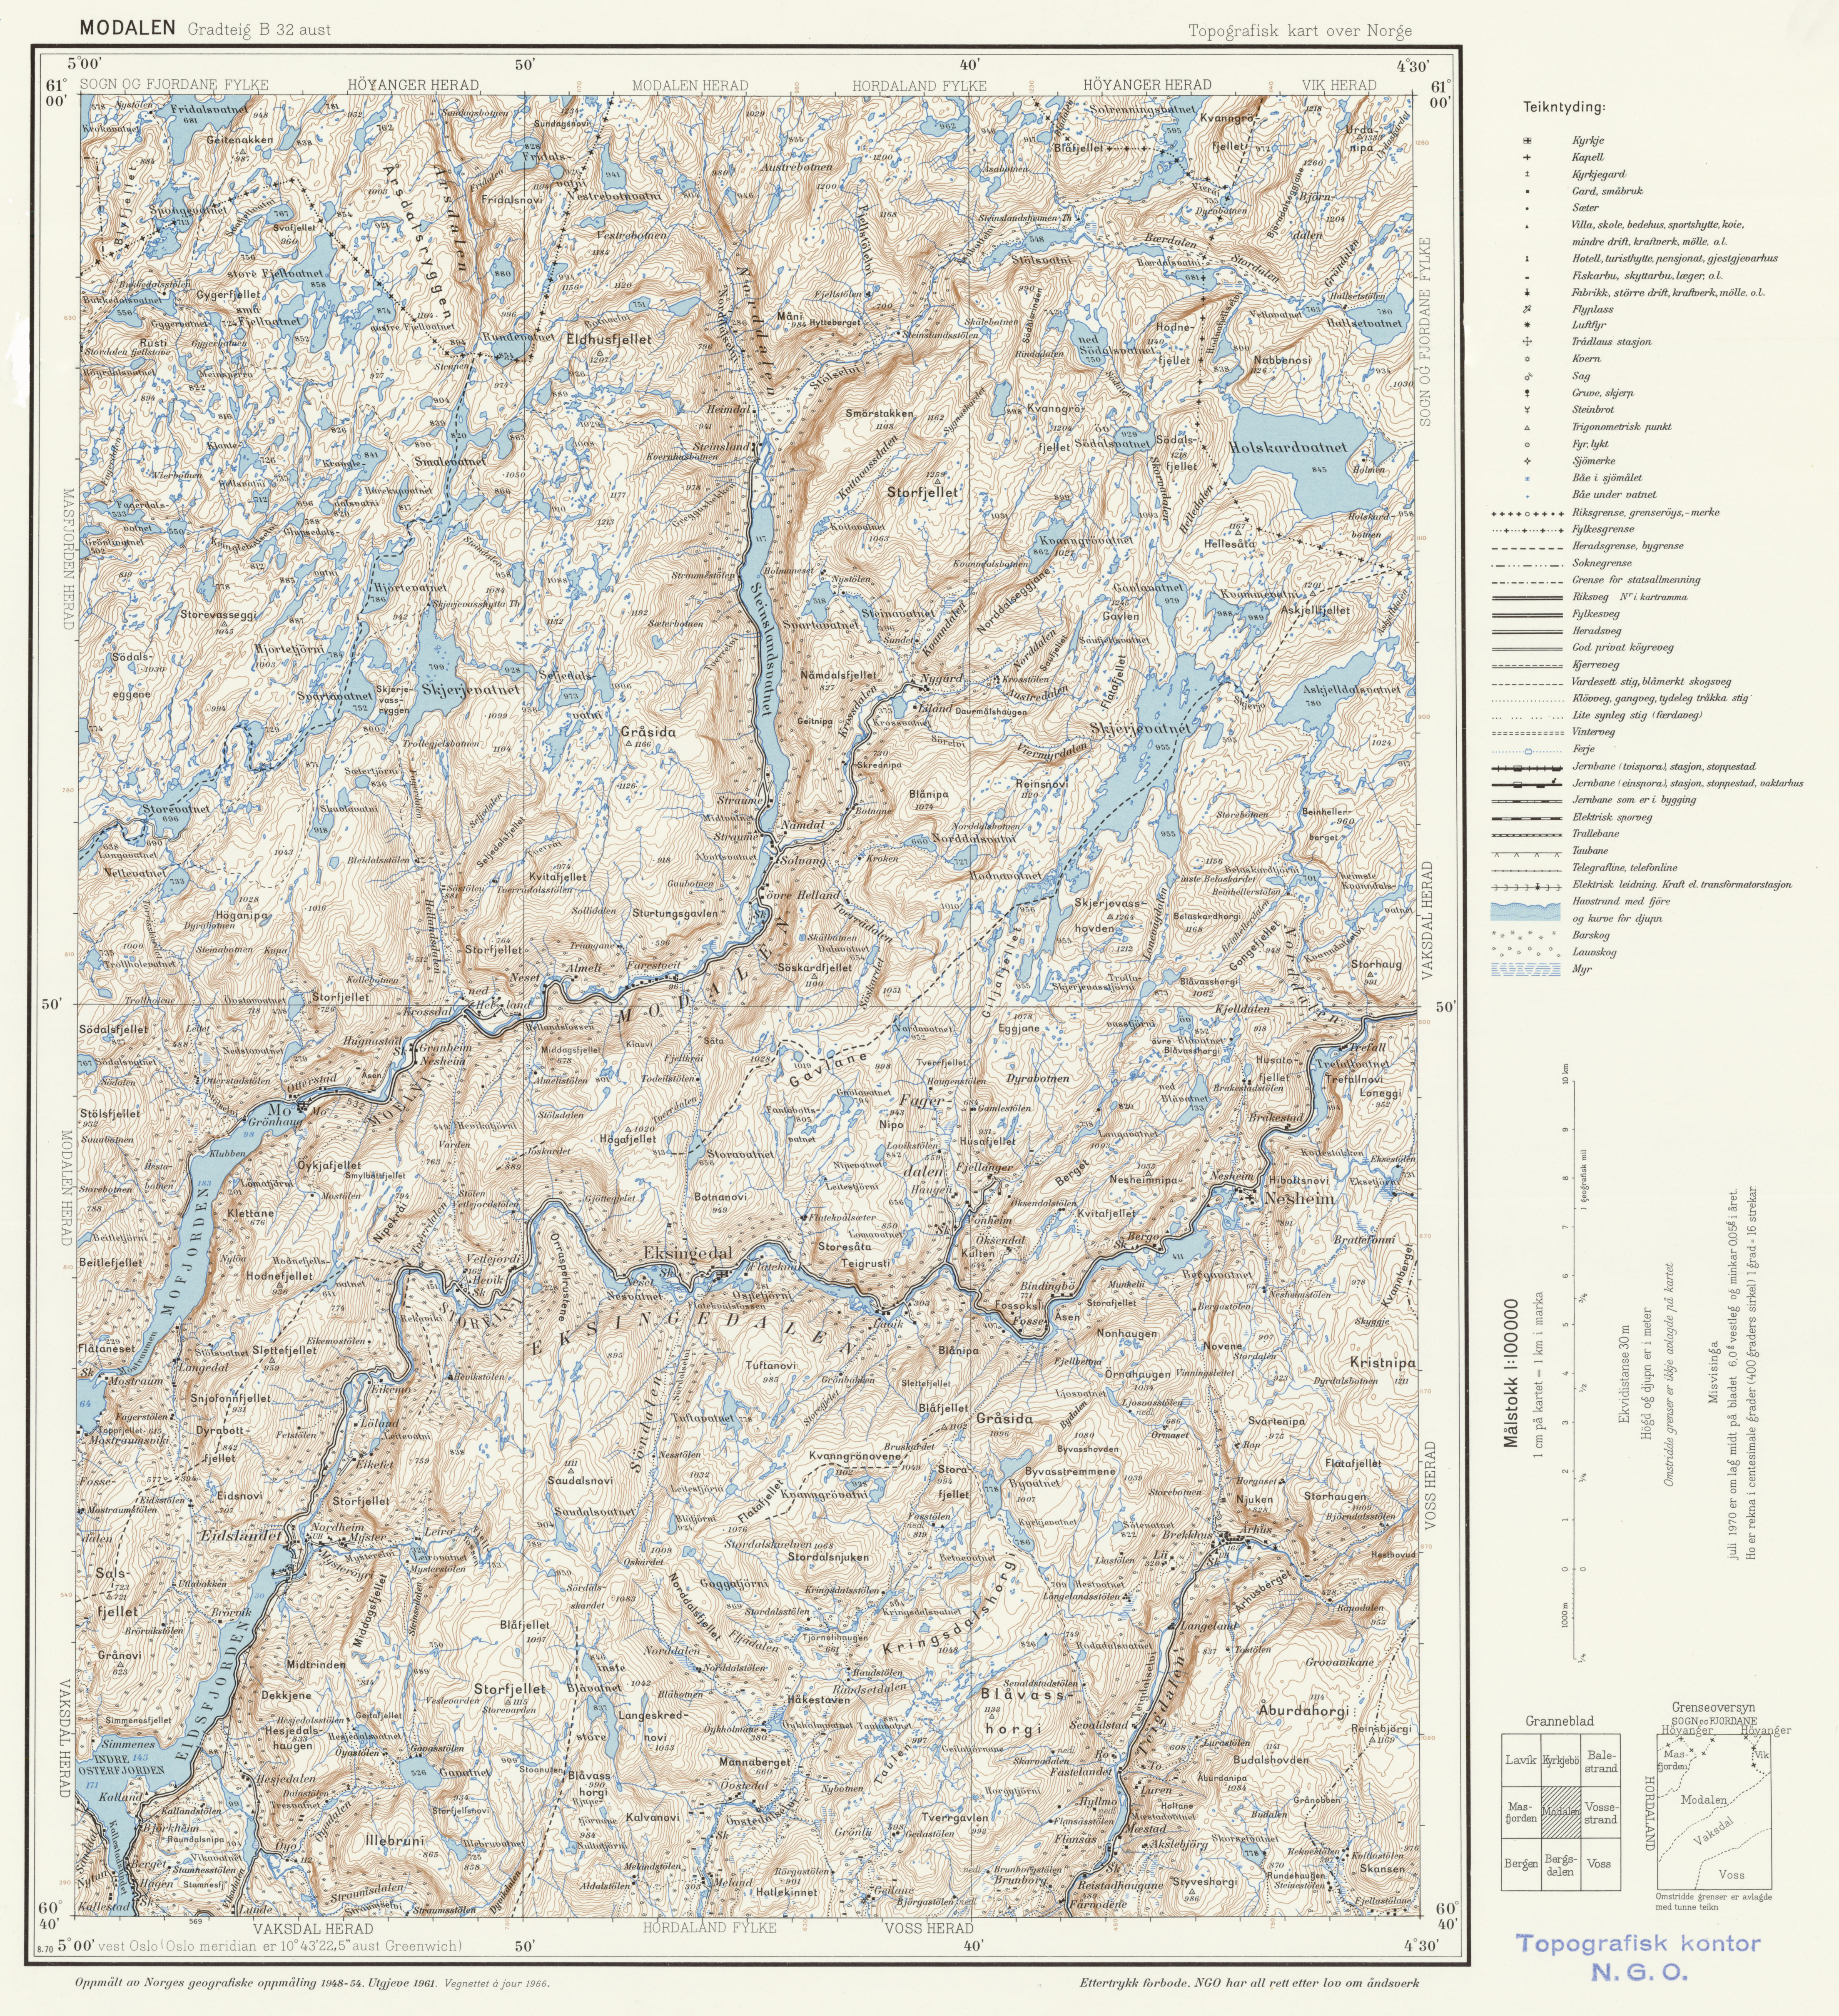 Topographic Map Of Norway.File Topographic Map Of Norway B32 Aust Modalen 1966 Jpg